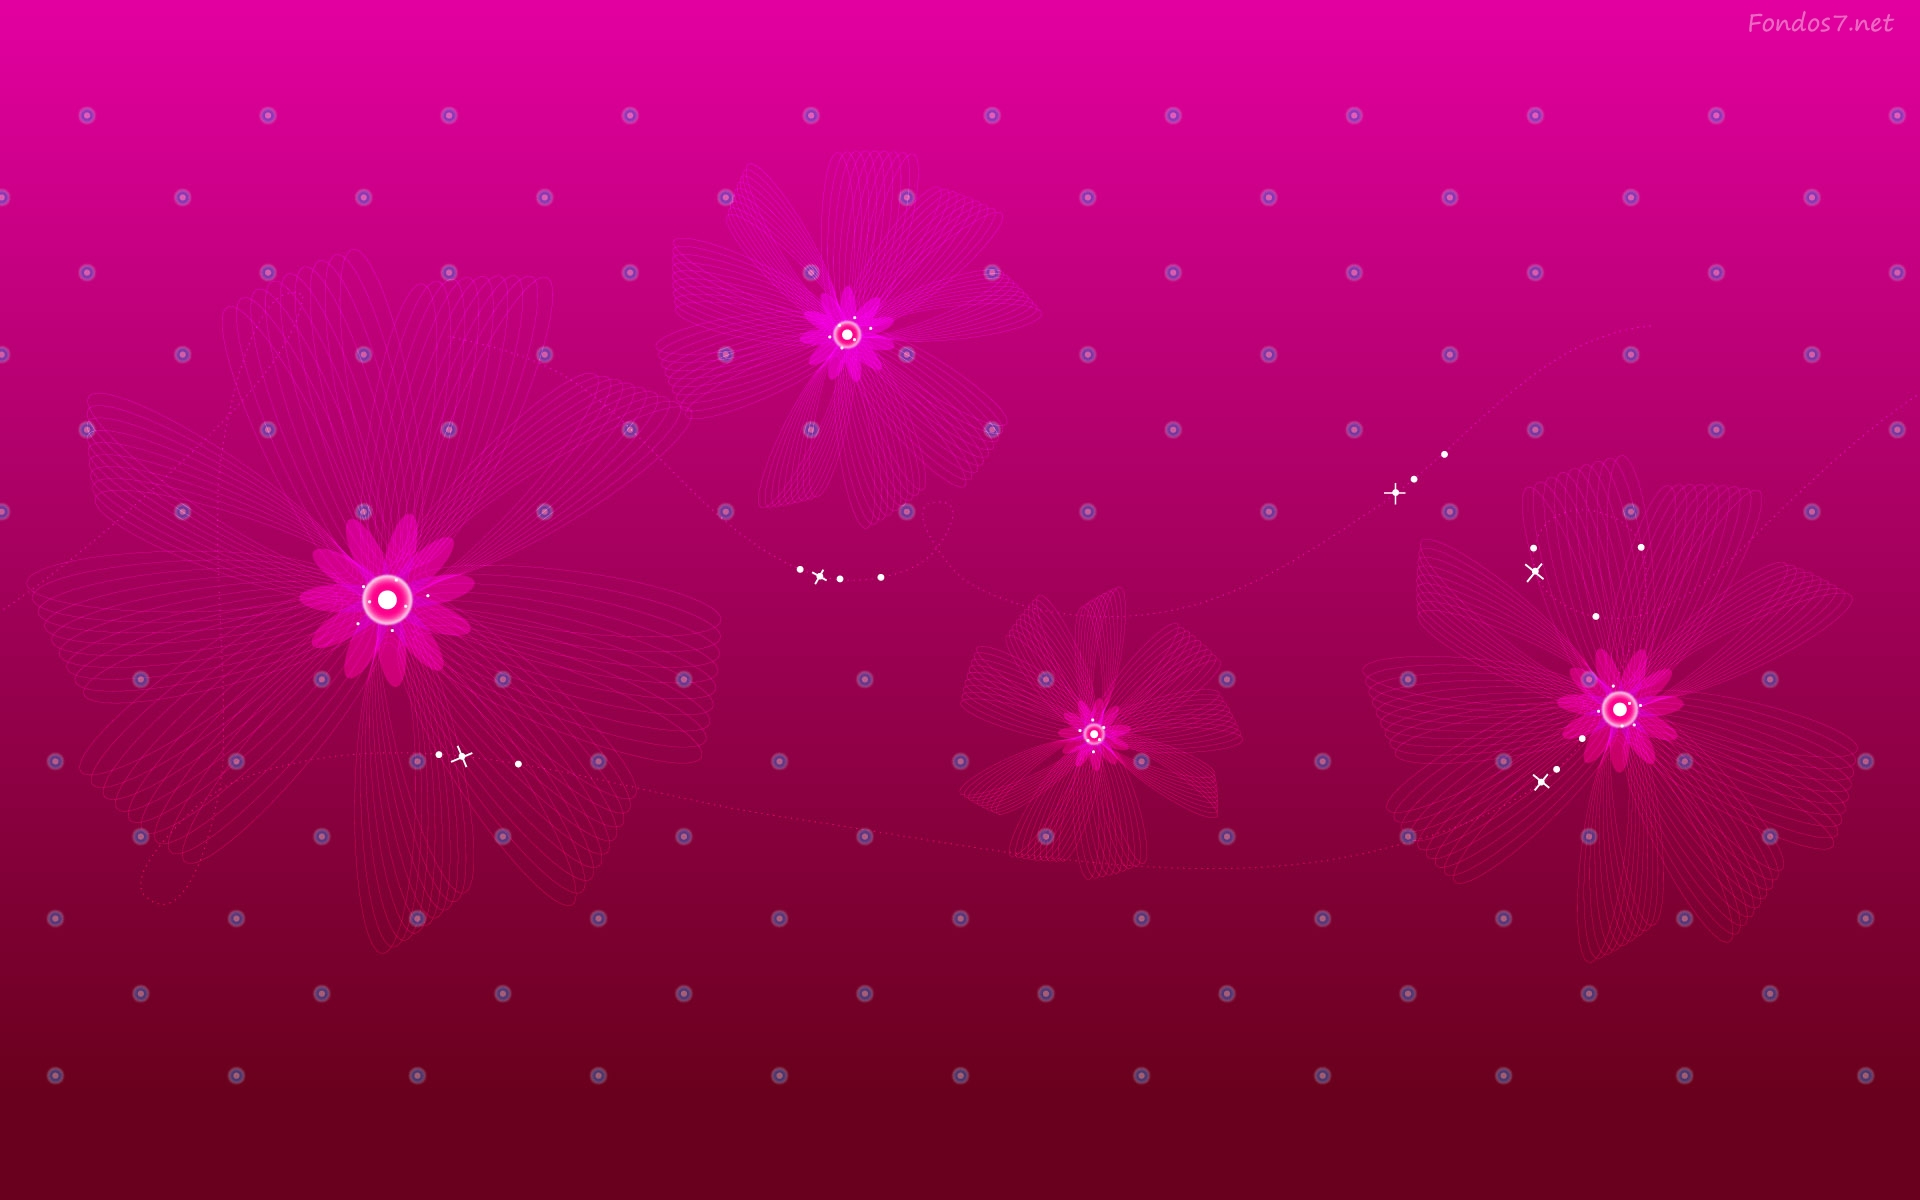 Dark Pink Wallpaper Download 6688 Wallpaper Cool Walldiskpapercom 1920x1200